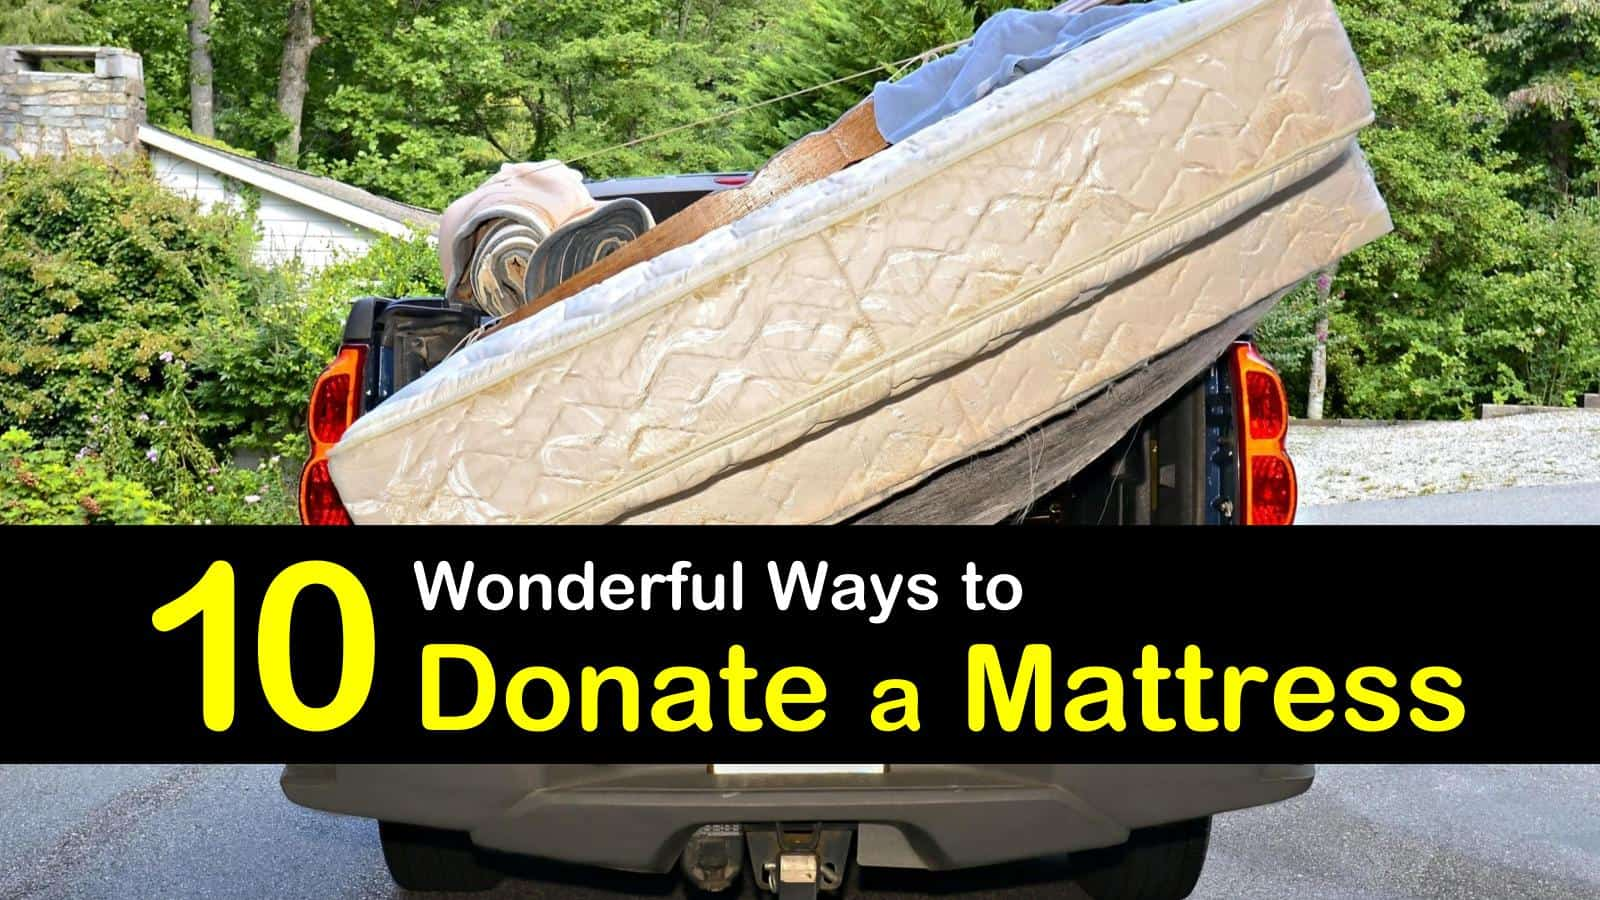 donate a mattress titleimg1